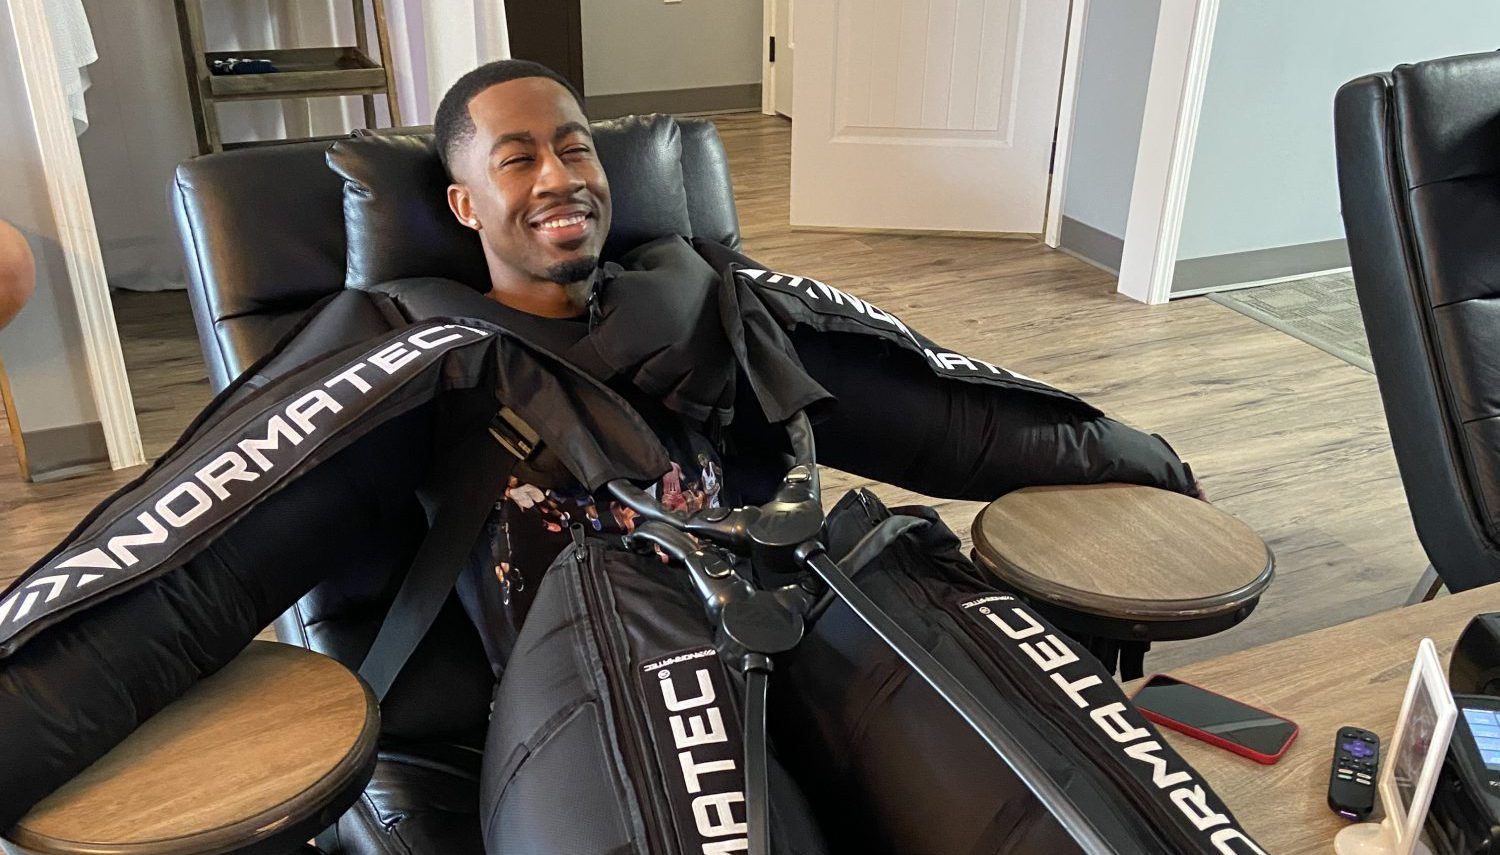 Customer using NormaTec at CryoStretch in Knoxville